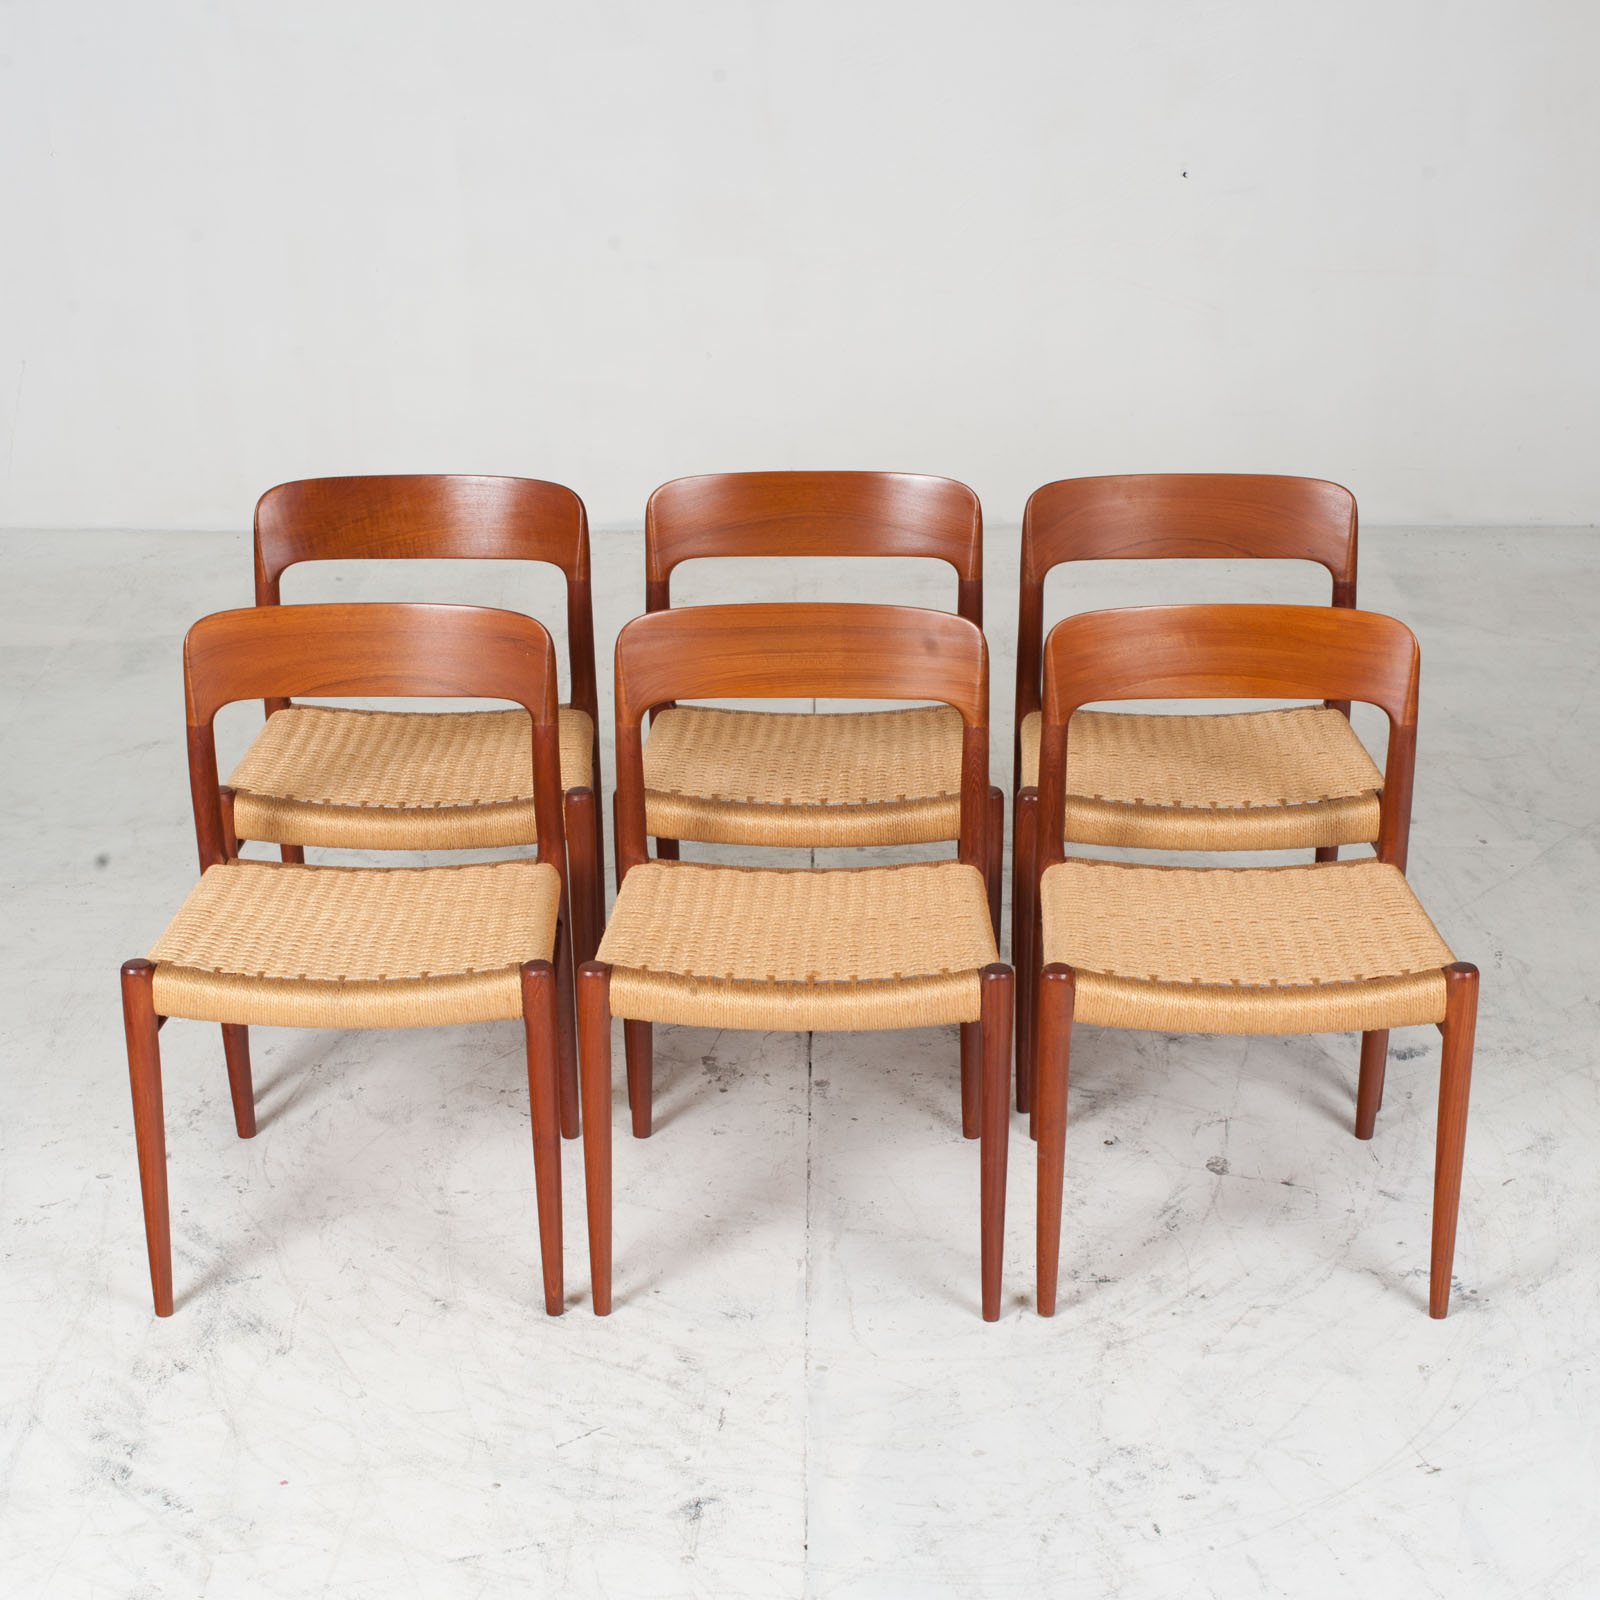 Set Of 6 Model 75 Dining Chairs By J. L. Moller In Teak And Cord 1960s Denmark 10